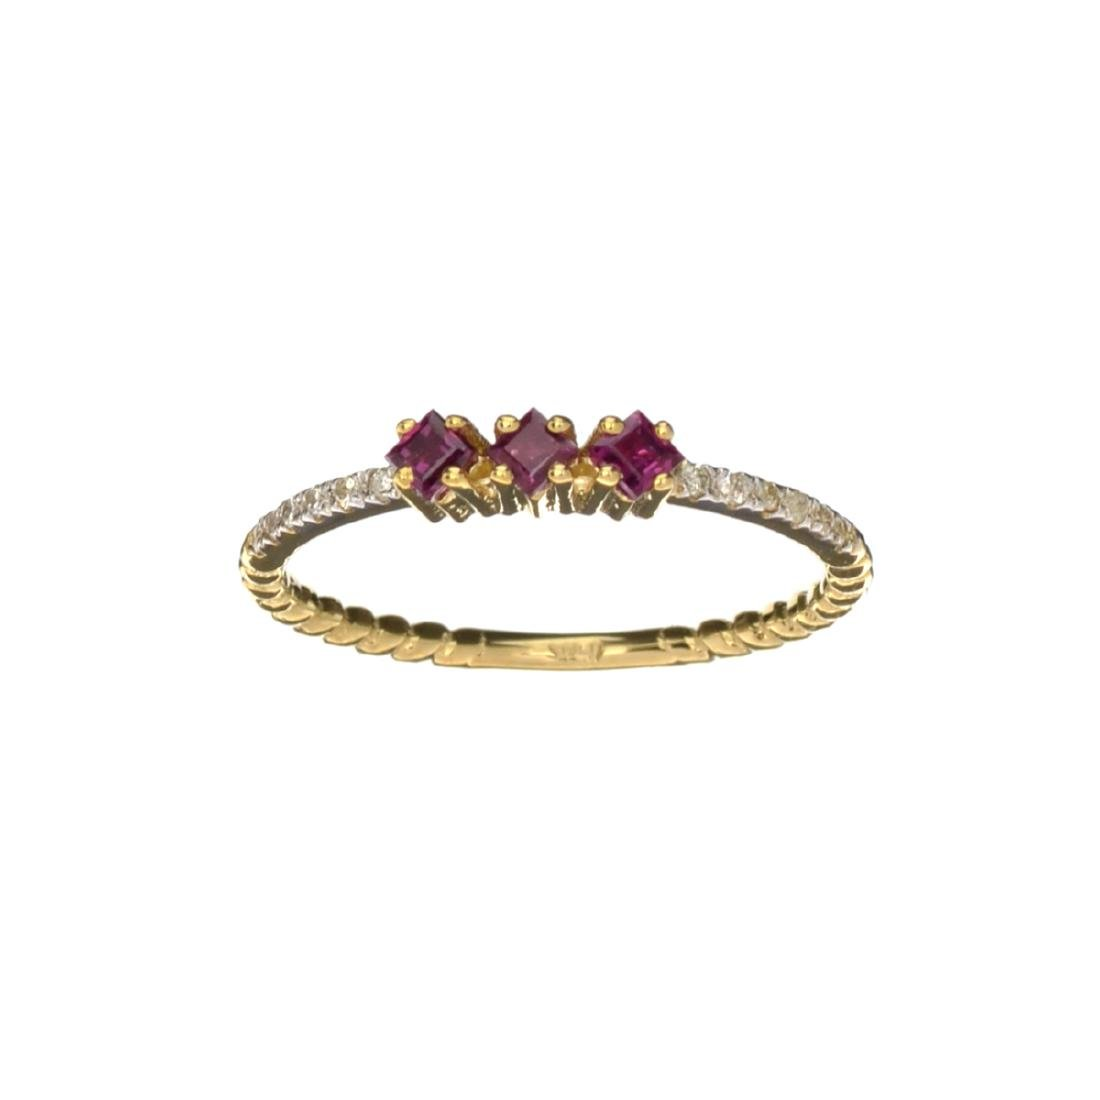 APP: 0.5k Fine Jewelry 14KT Gold, 0.16CT Ruby And